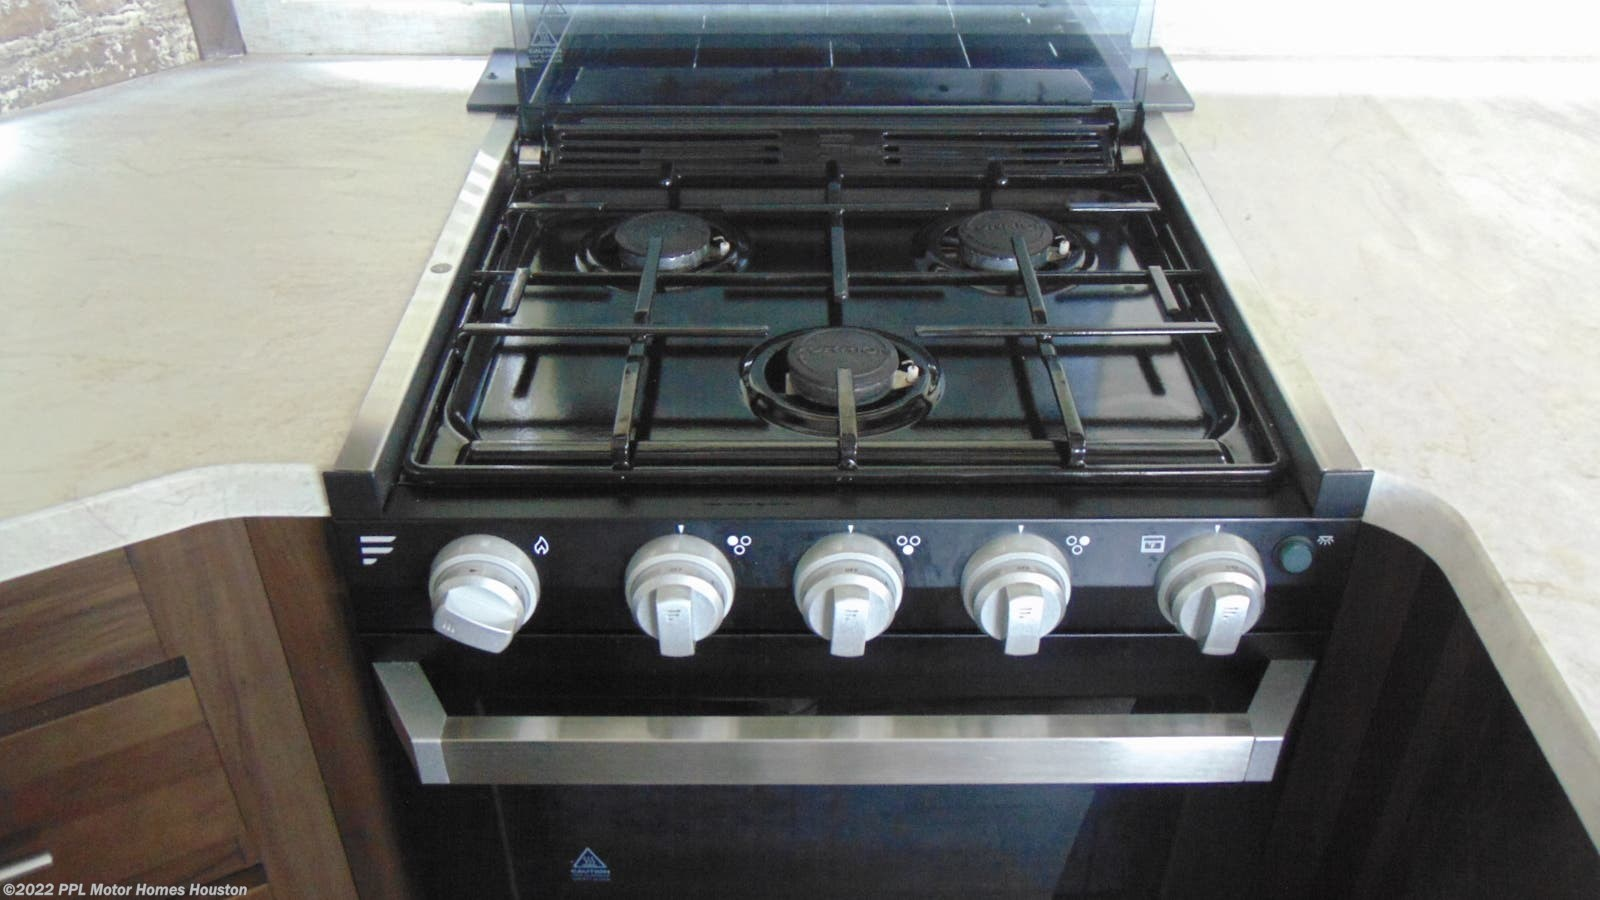 Lp Gas Cooktops For Rv On Sale Now Ppl Motor Homes >> 2018 Forest River Rv Cherokee 274vfk For Sale In Houston Tx 77074 T217